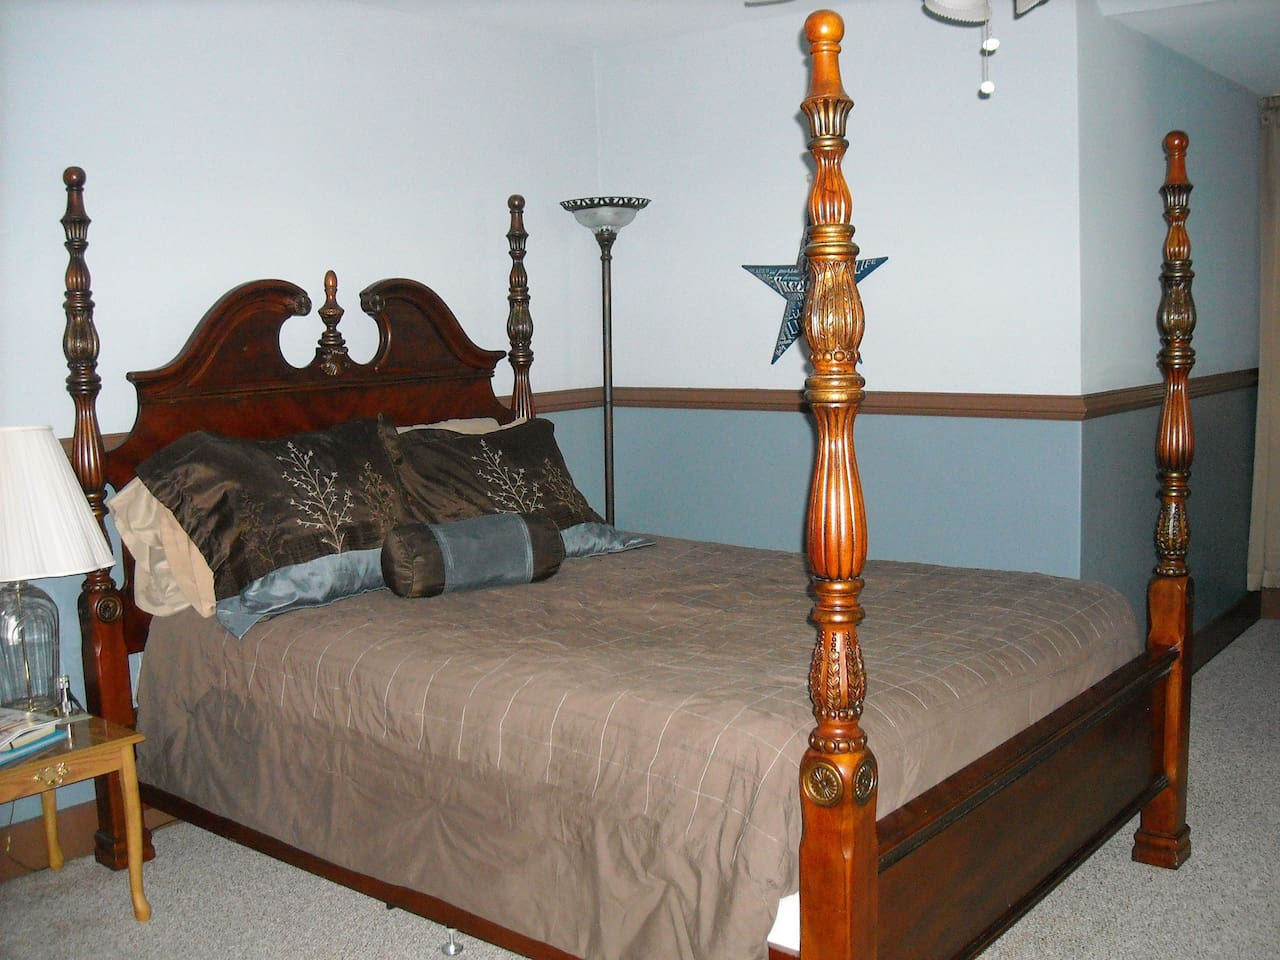 The Harmony Room has a beautiful four post bed and comfortable sitting area.